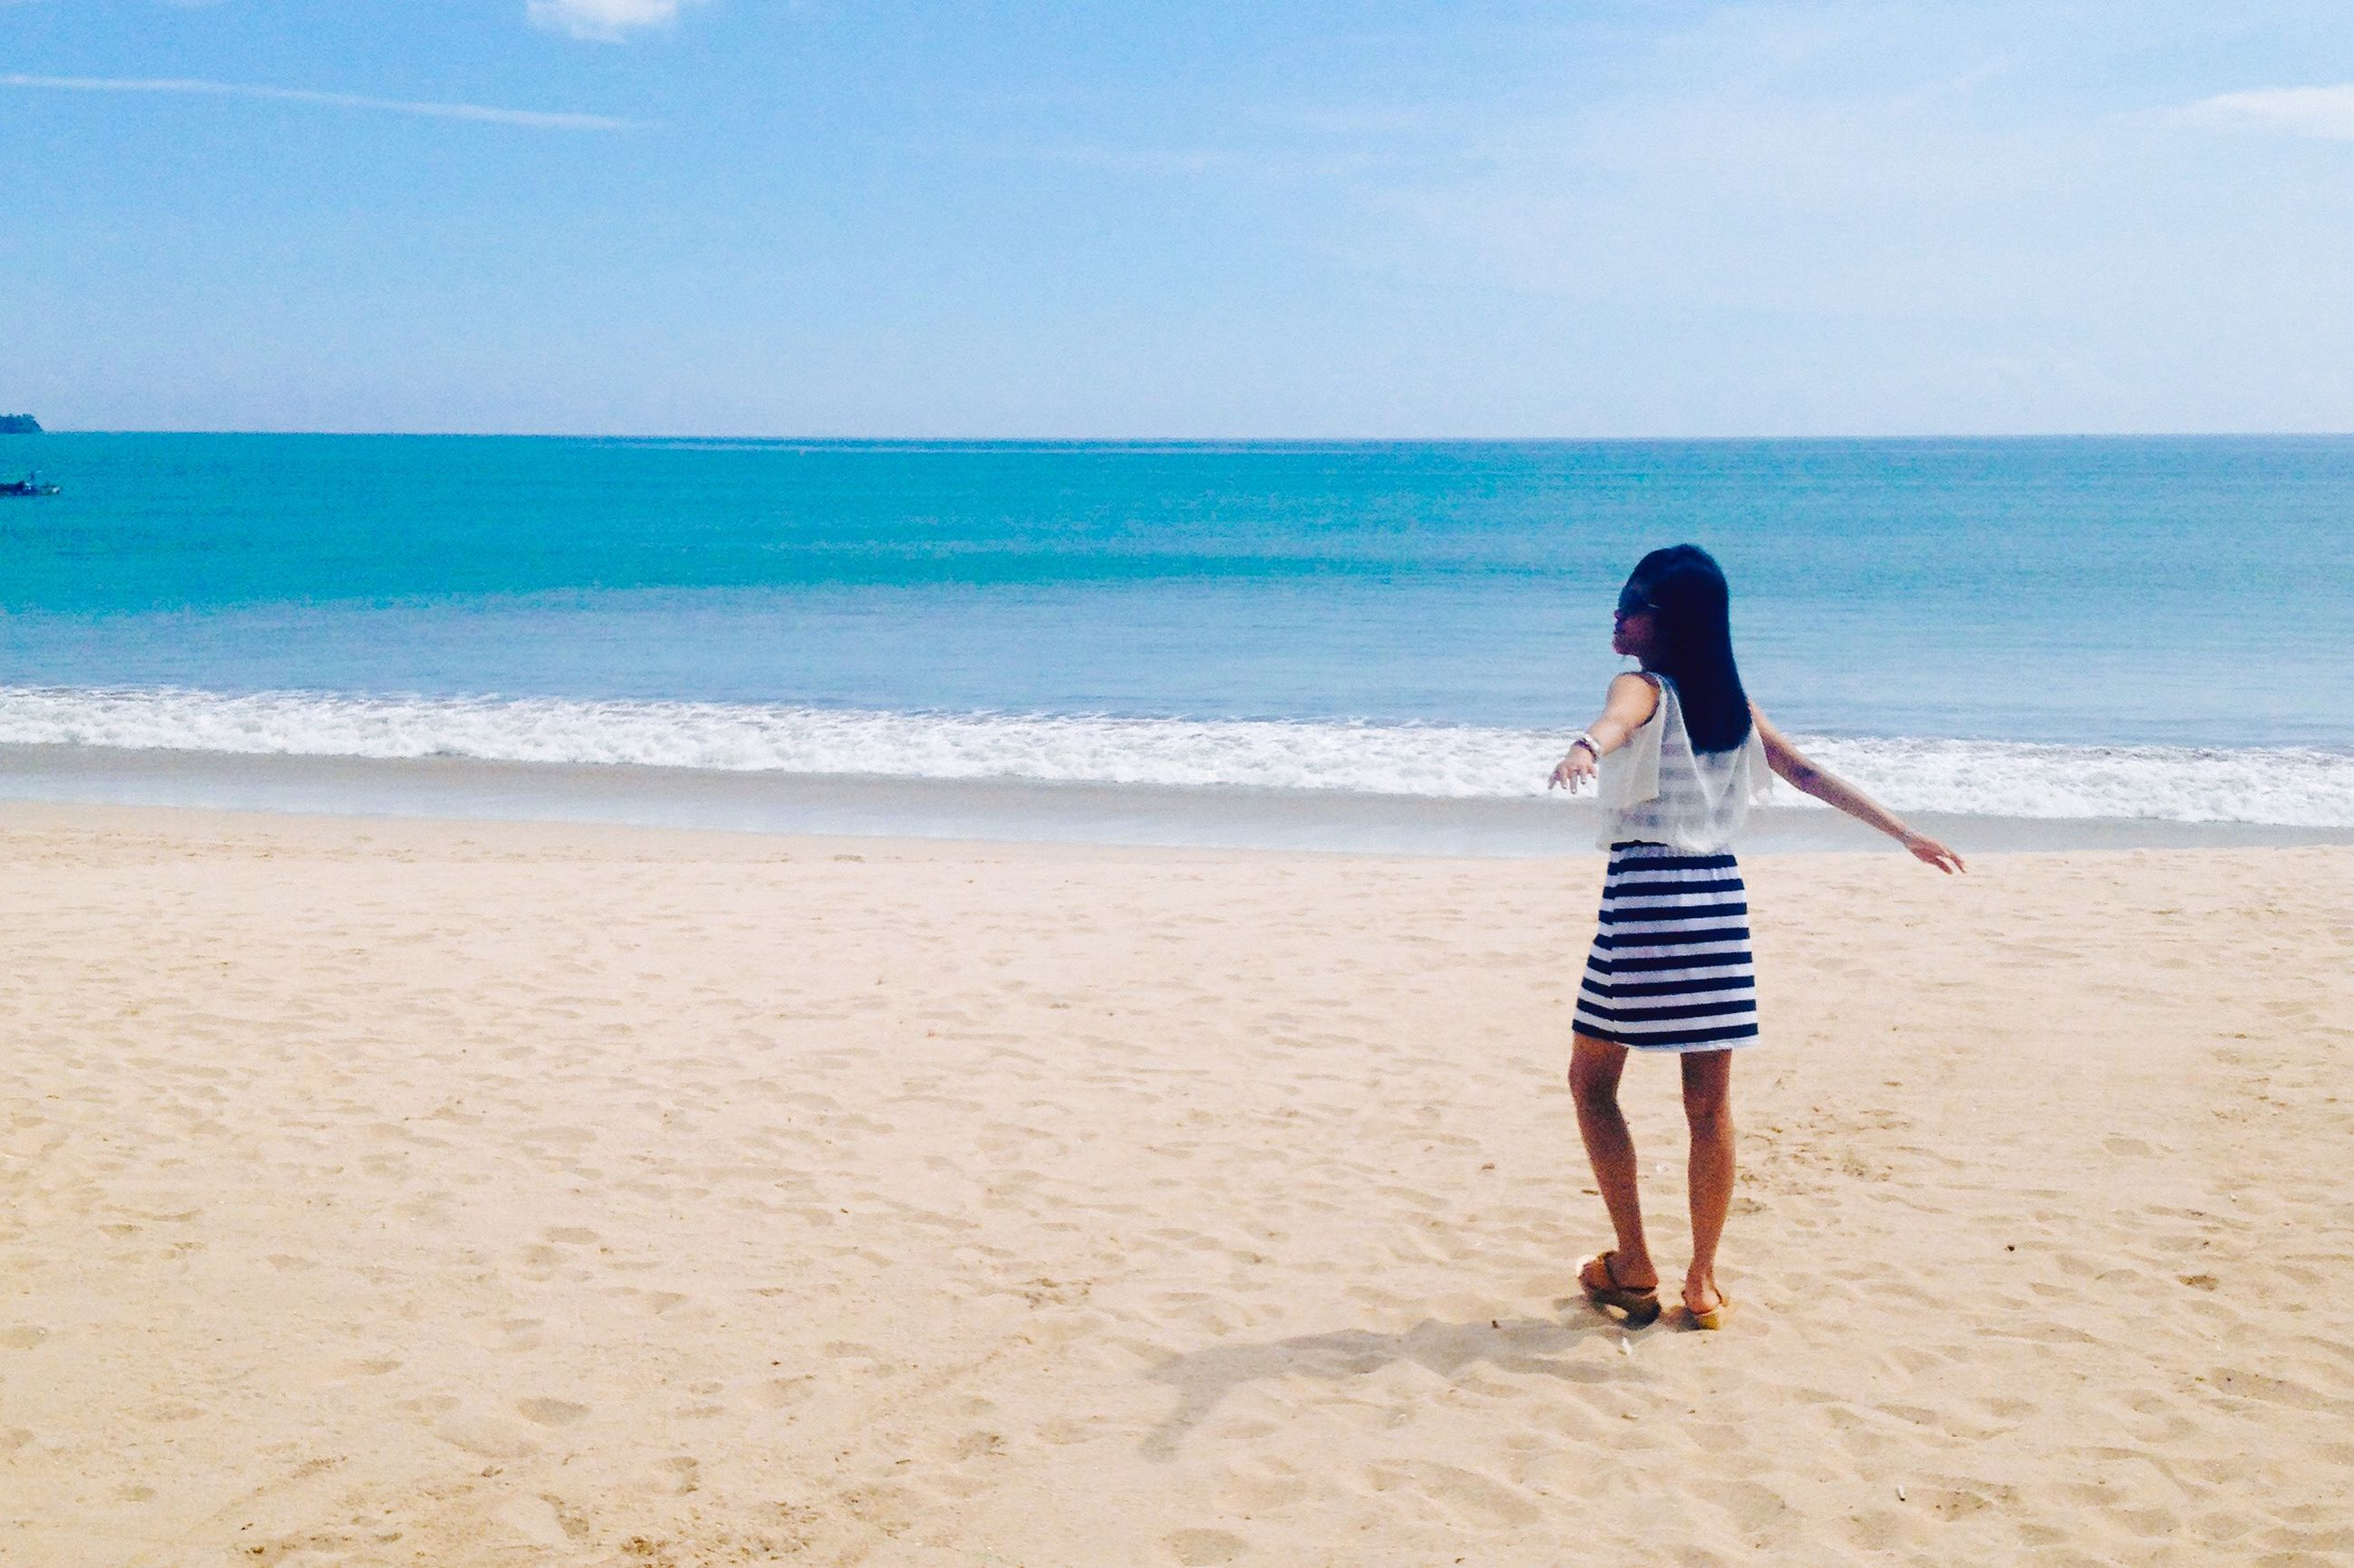 sea, beach, horizon over water, shore, water, sand, full length, lifestyles, leisure activity, casual clothing, sky, vacations, rear view, childhood, beauty in nature, person, standing, scenics